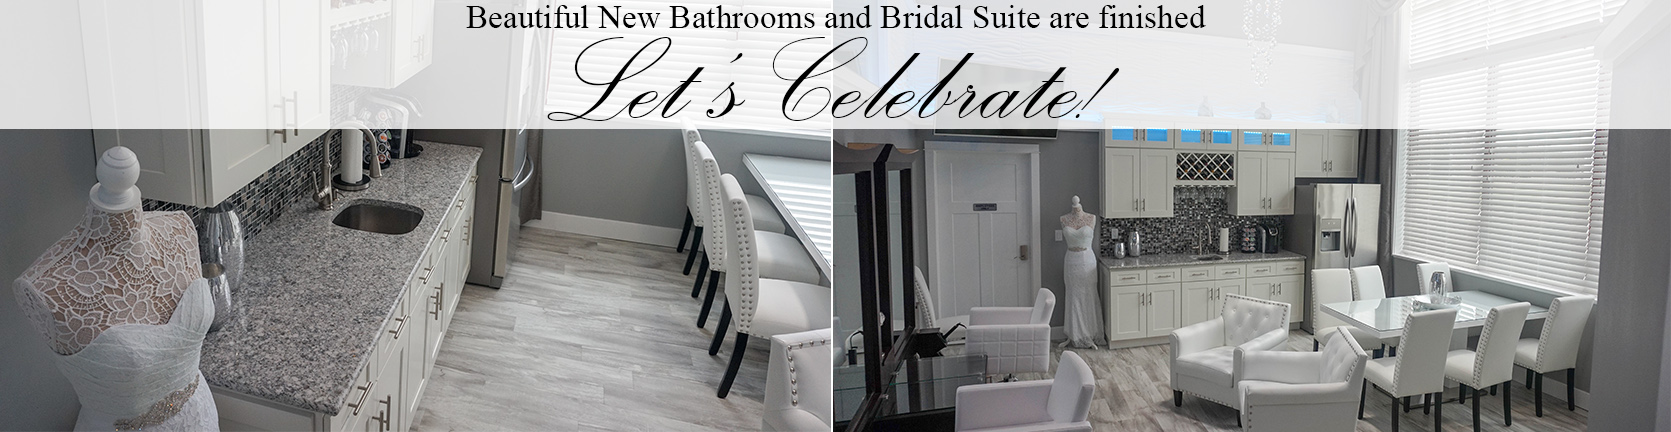 web-slider-bridal-suite-announce